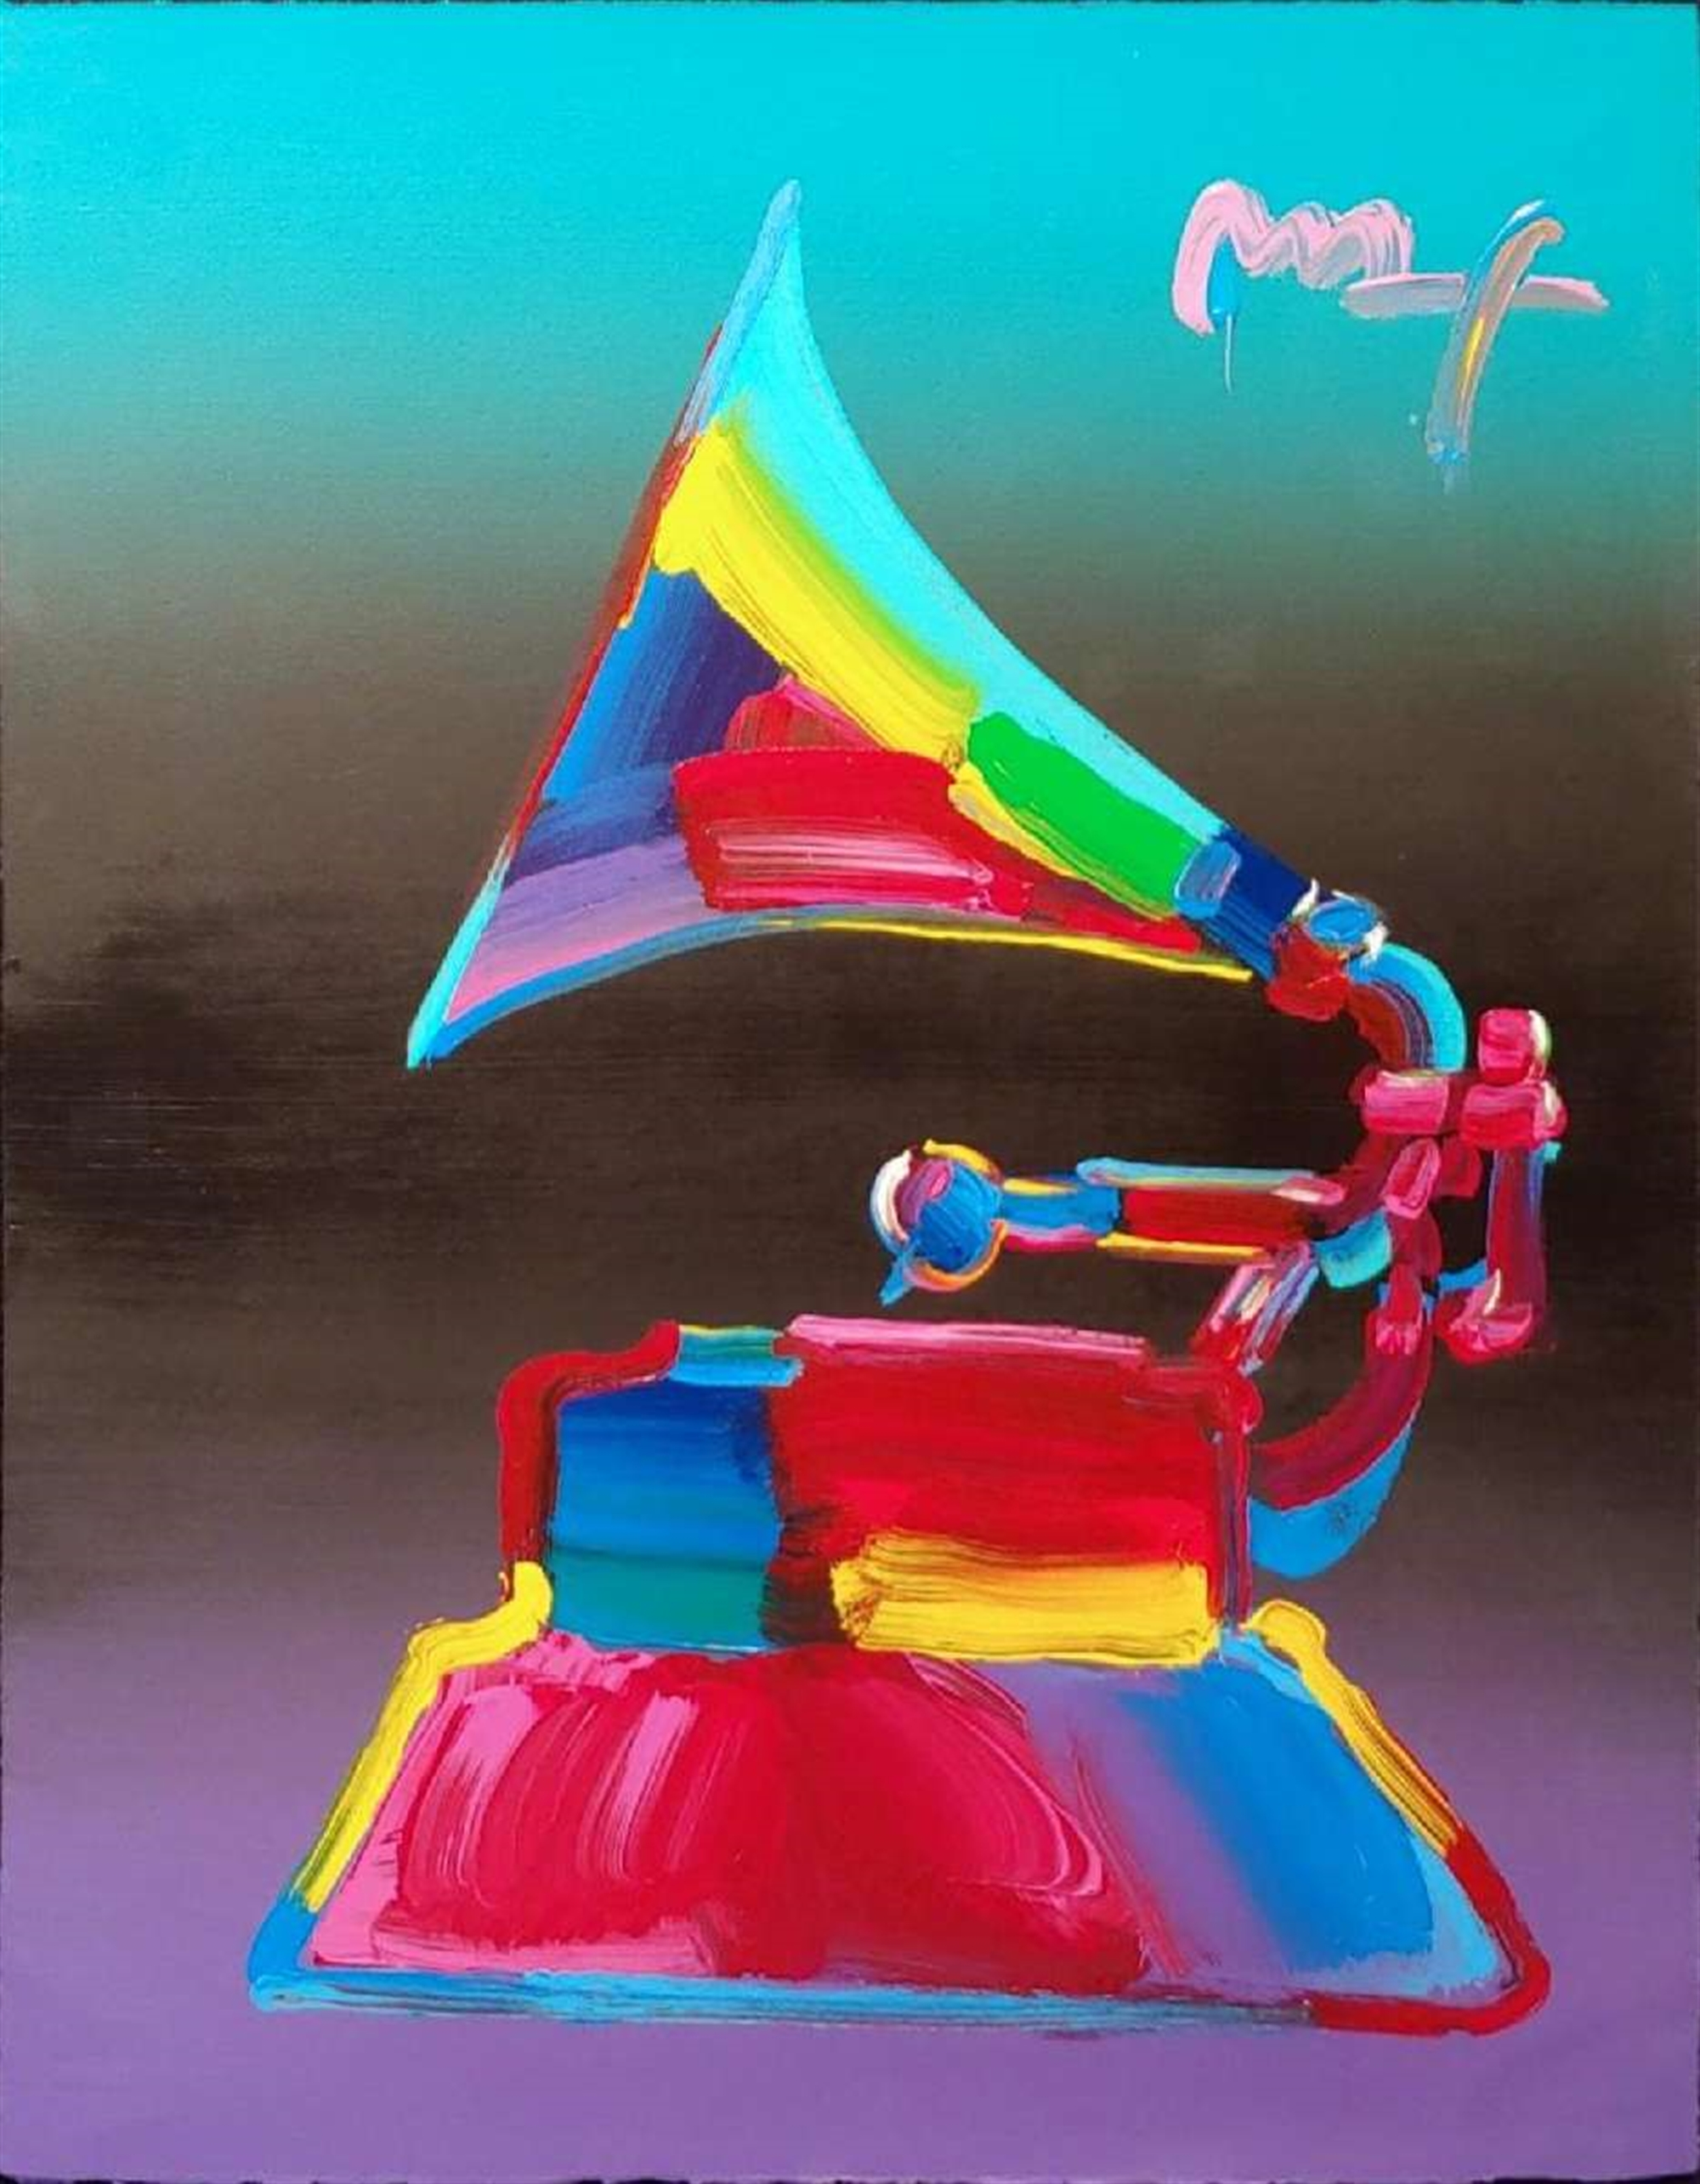 GRAMMY 1989 by Peter Max